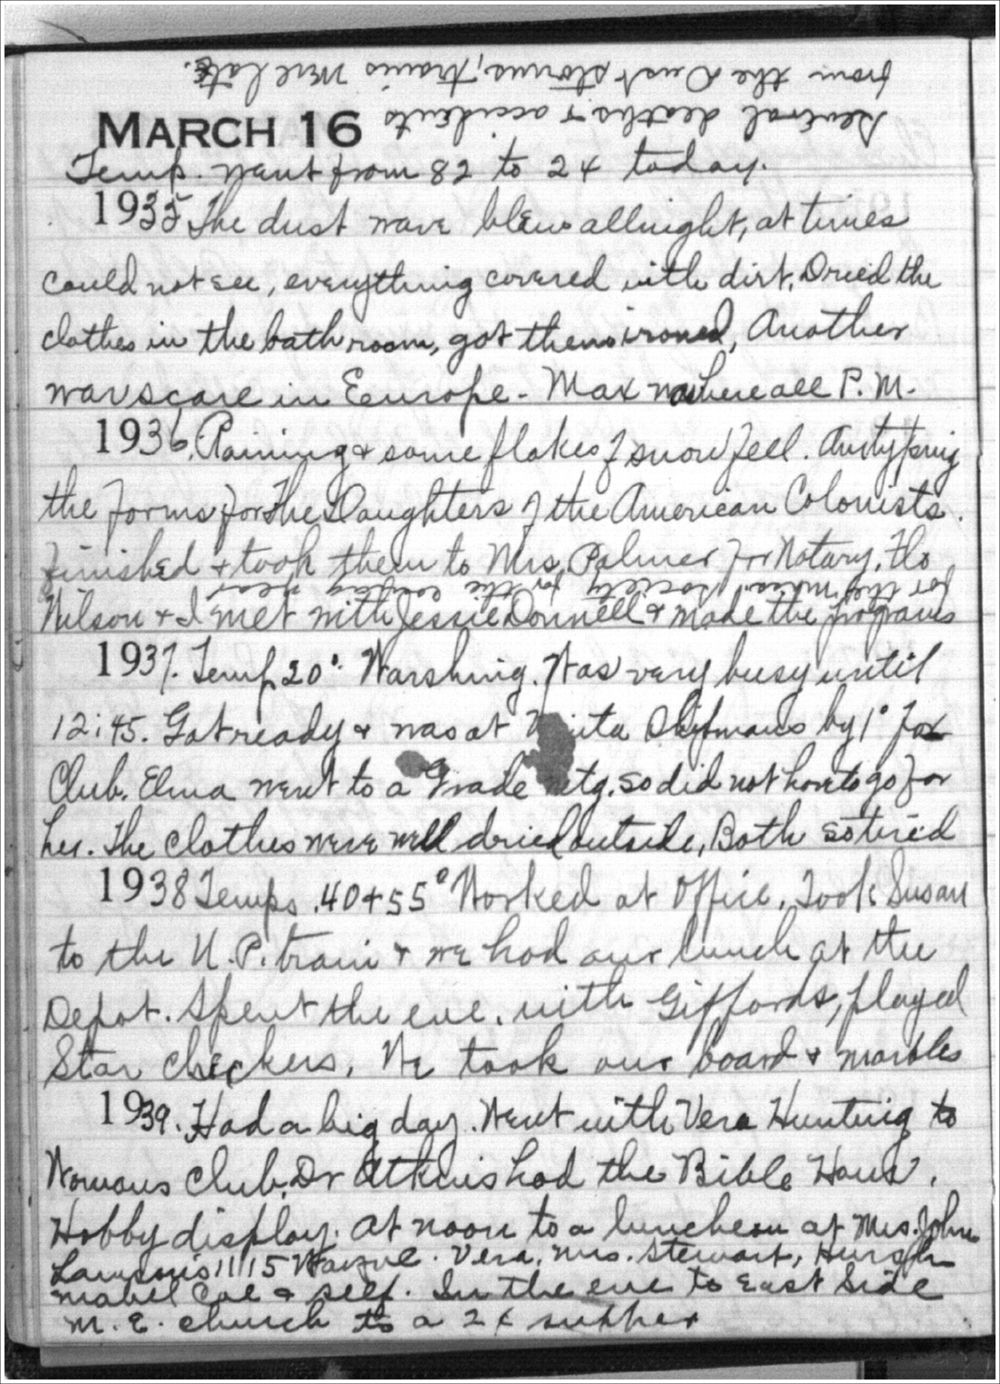 Mabel Holmes diary entries - March 16